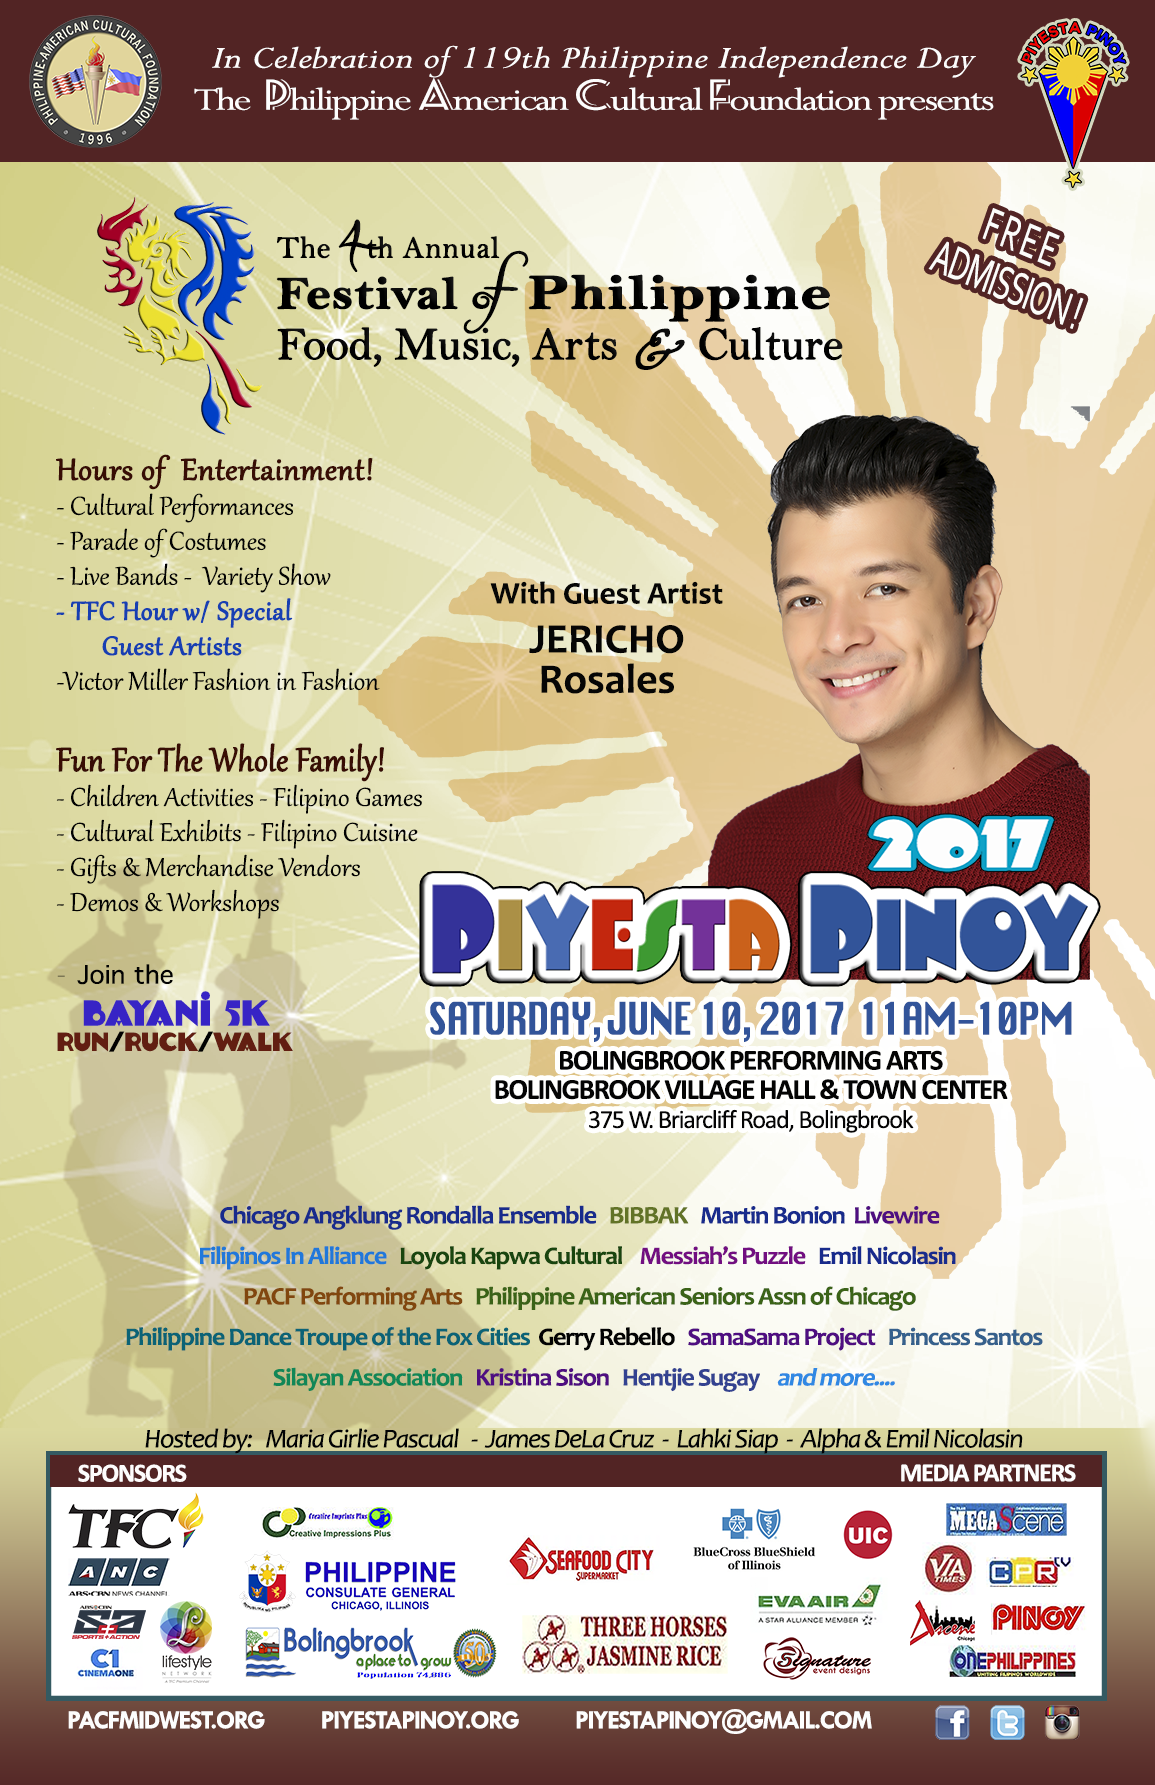 PHILIPPINE AMERICAN CULTURAL FOUNDATION | - Part 2